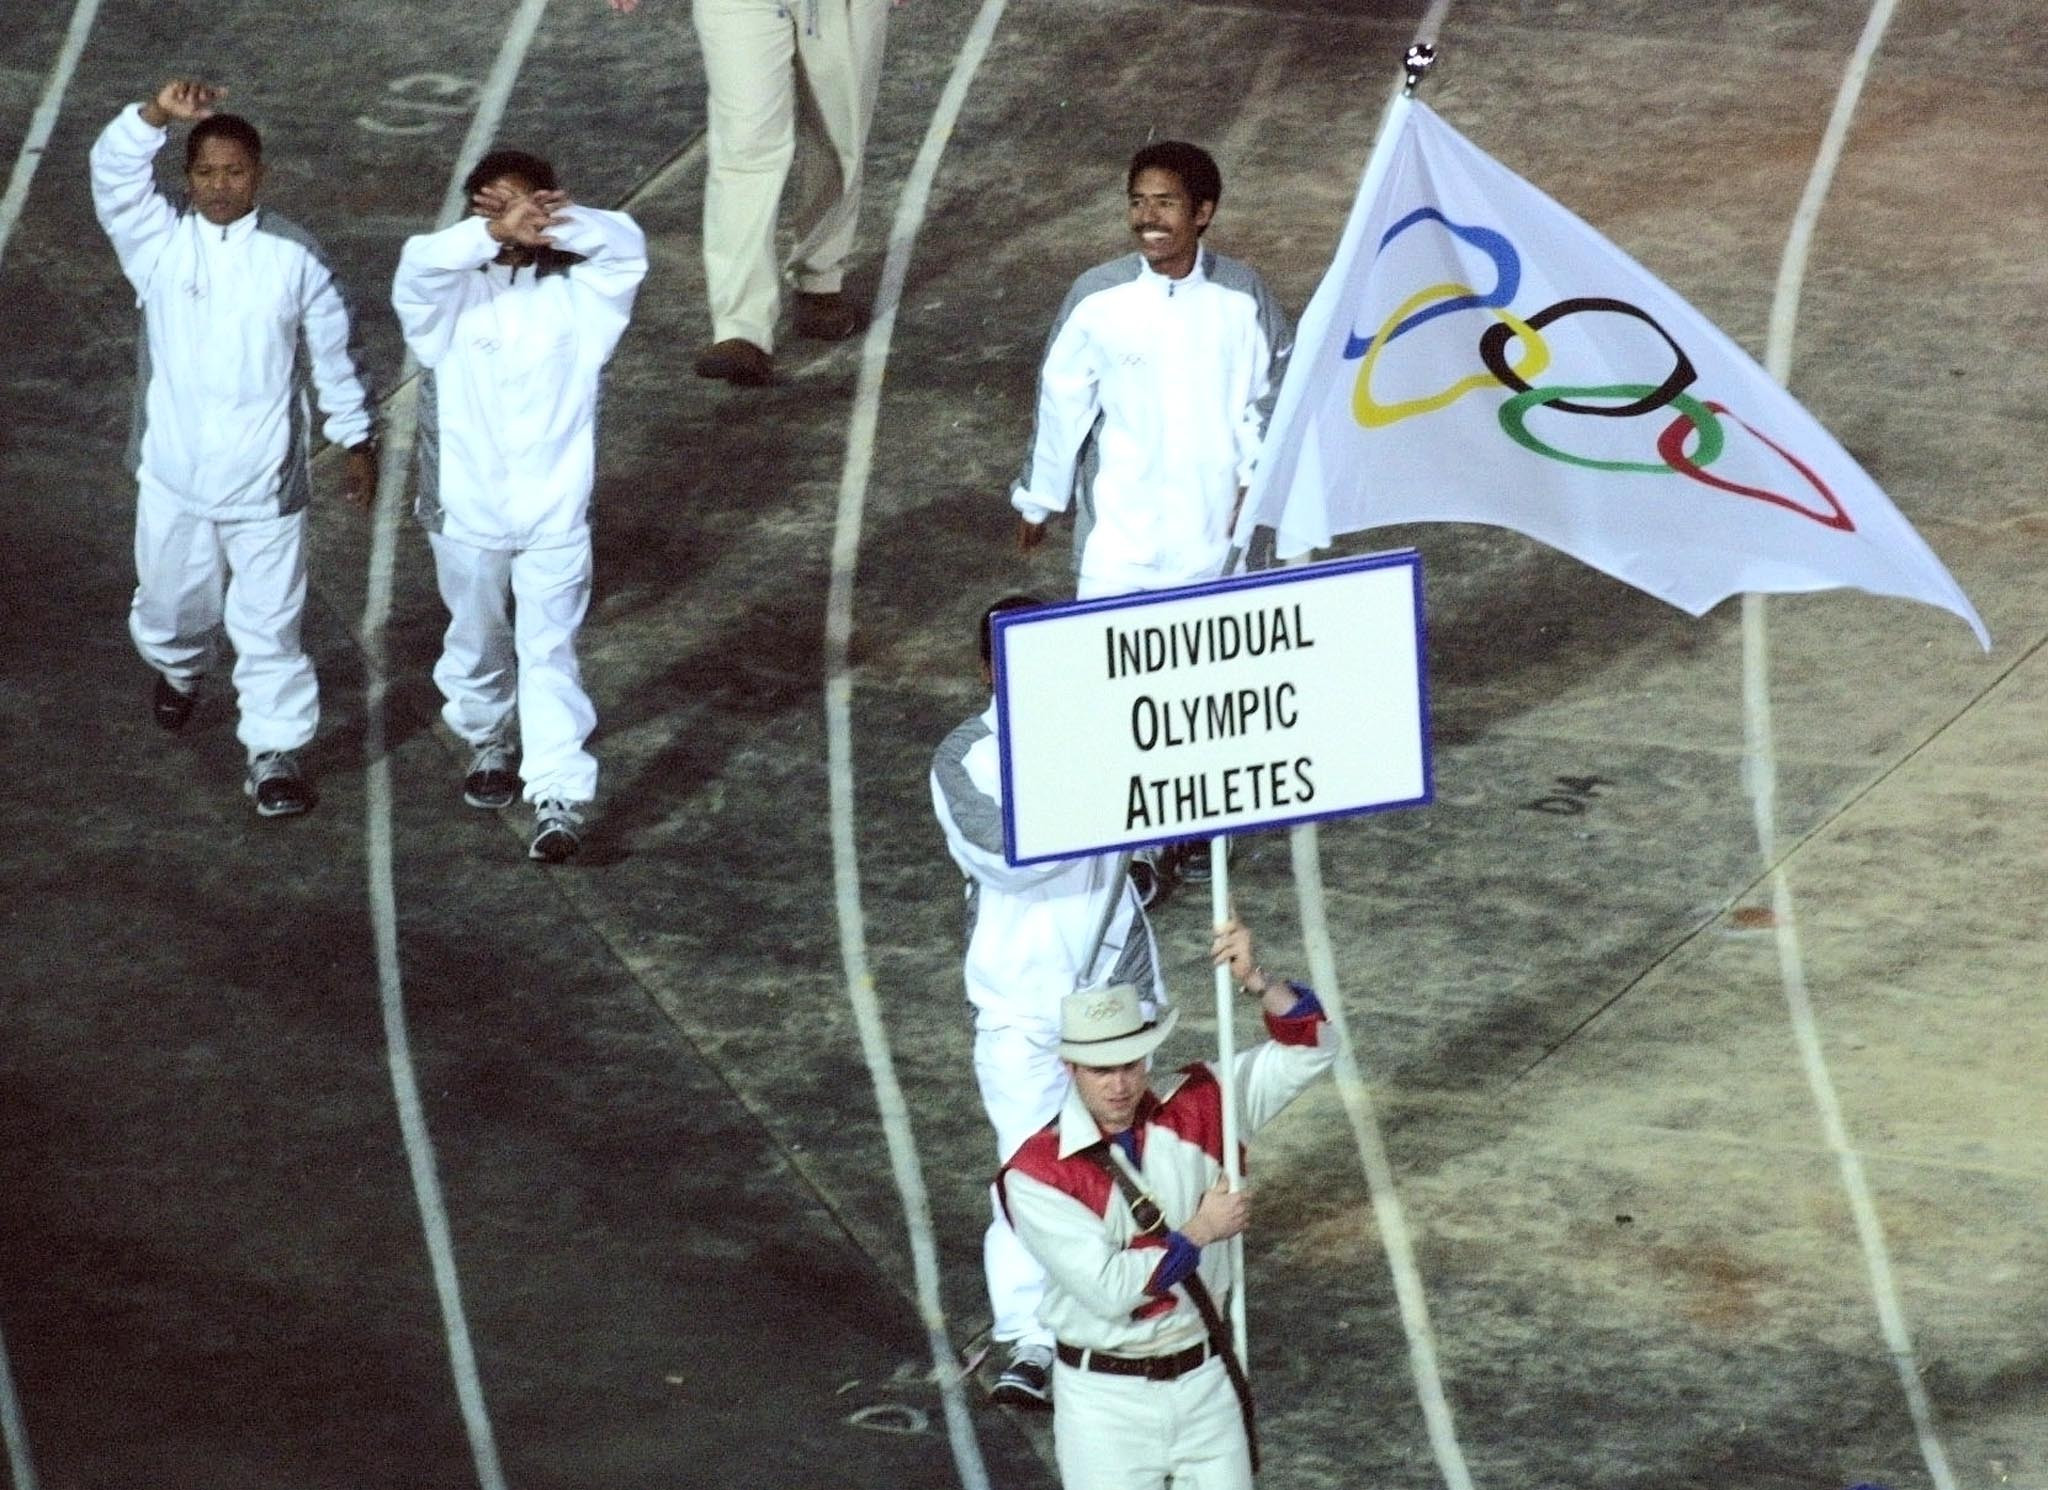 Athletes from East Timor march during the Sydney 2000 Olympic Games Opening Ceremony, where they competed as Individual Olympic Athletes ©Getty Images